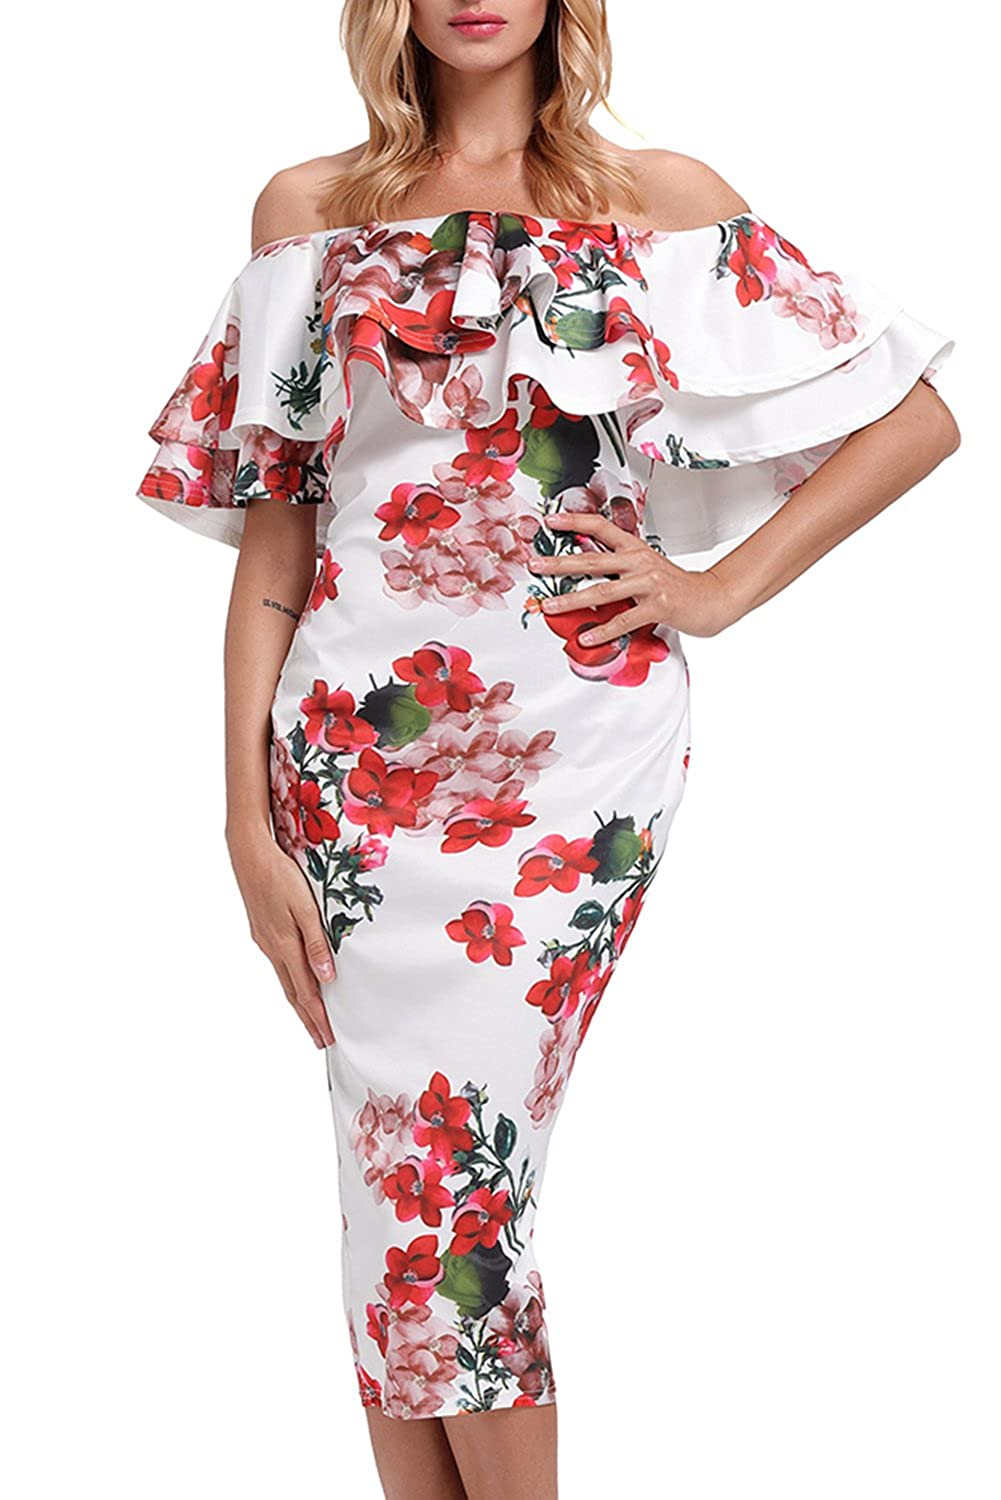 GOSOPIN Women's Off Shoulder Ruffle Bodycon Fit Floral Print Midi Dresses GO61611